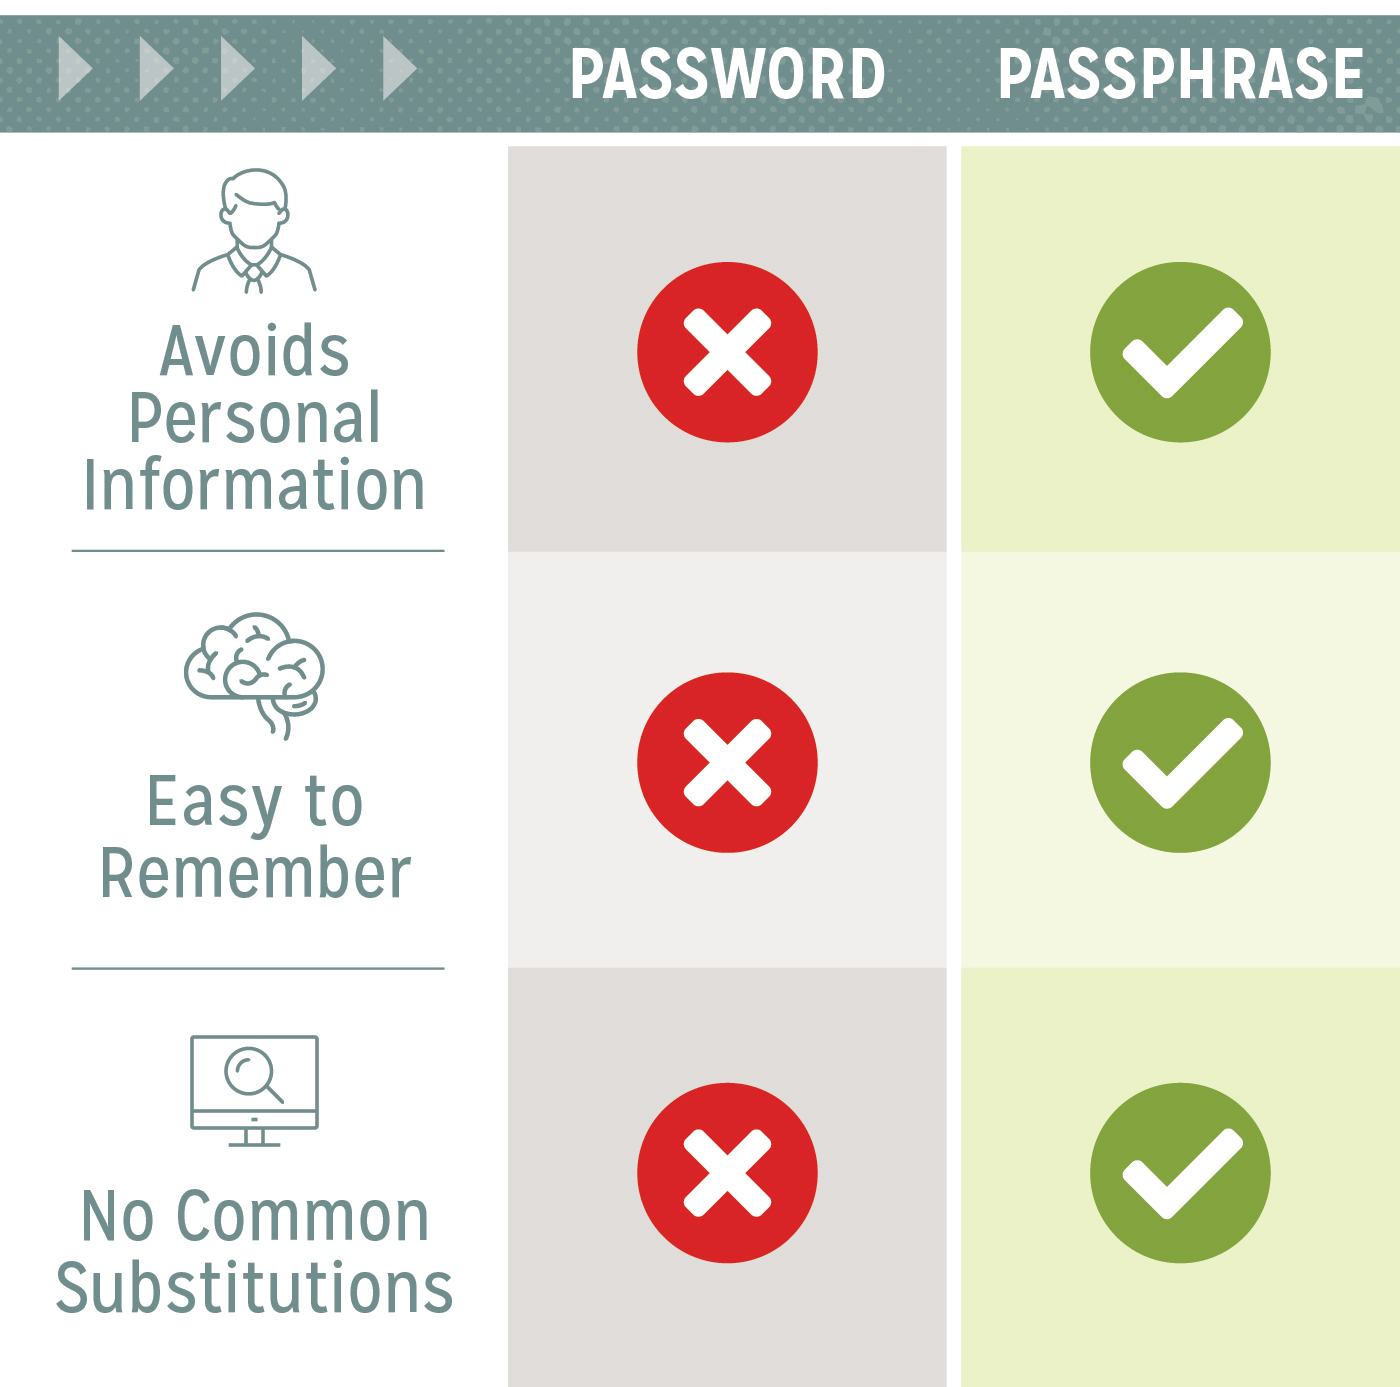 creating-strong-password-vs-passphrase-mobile-3